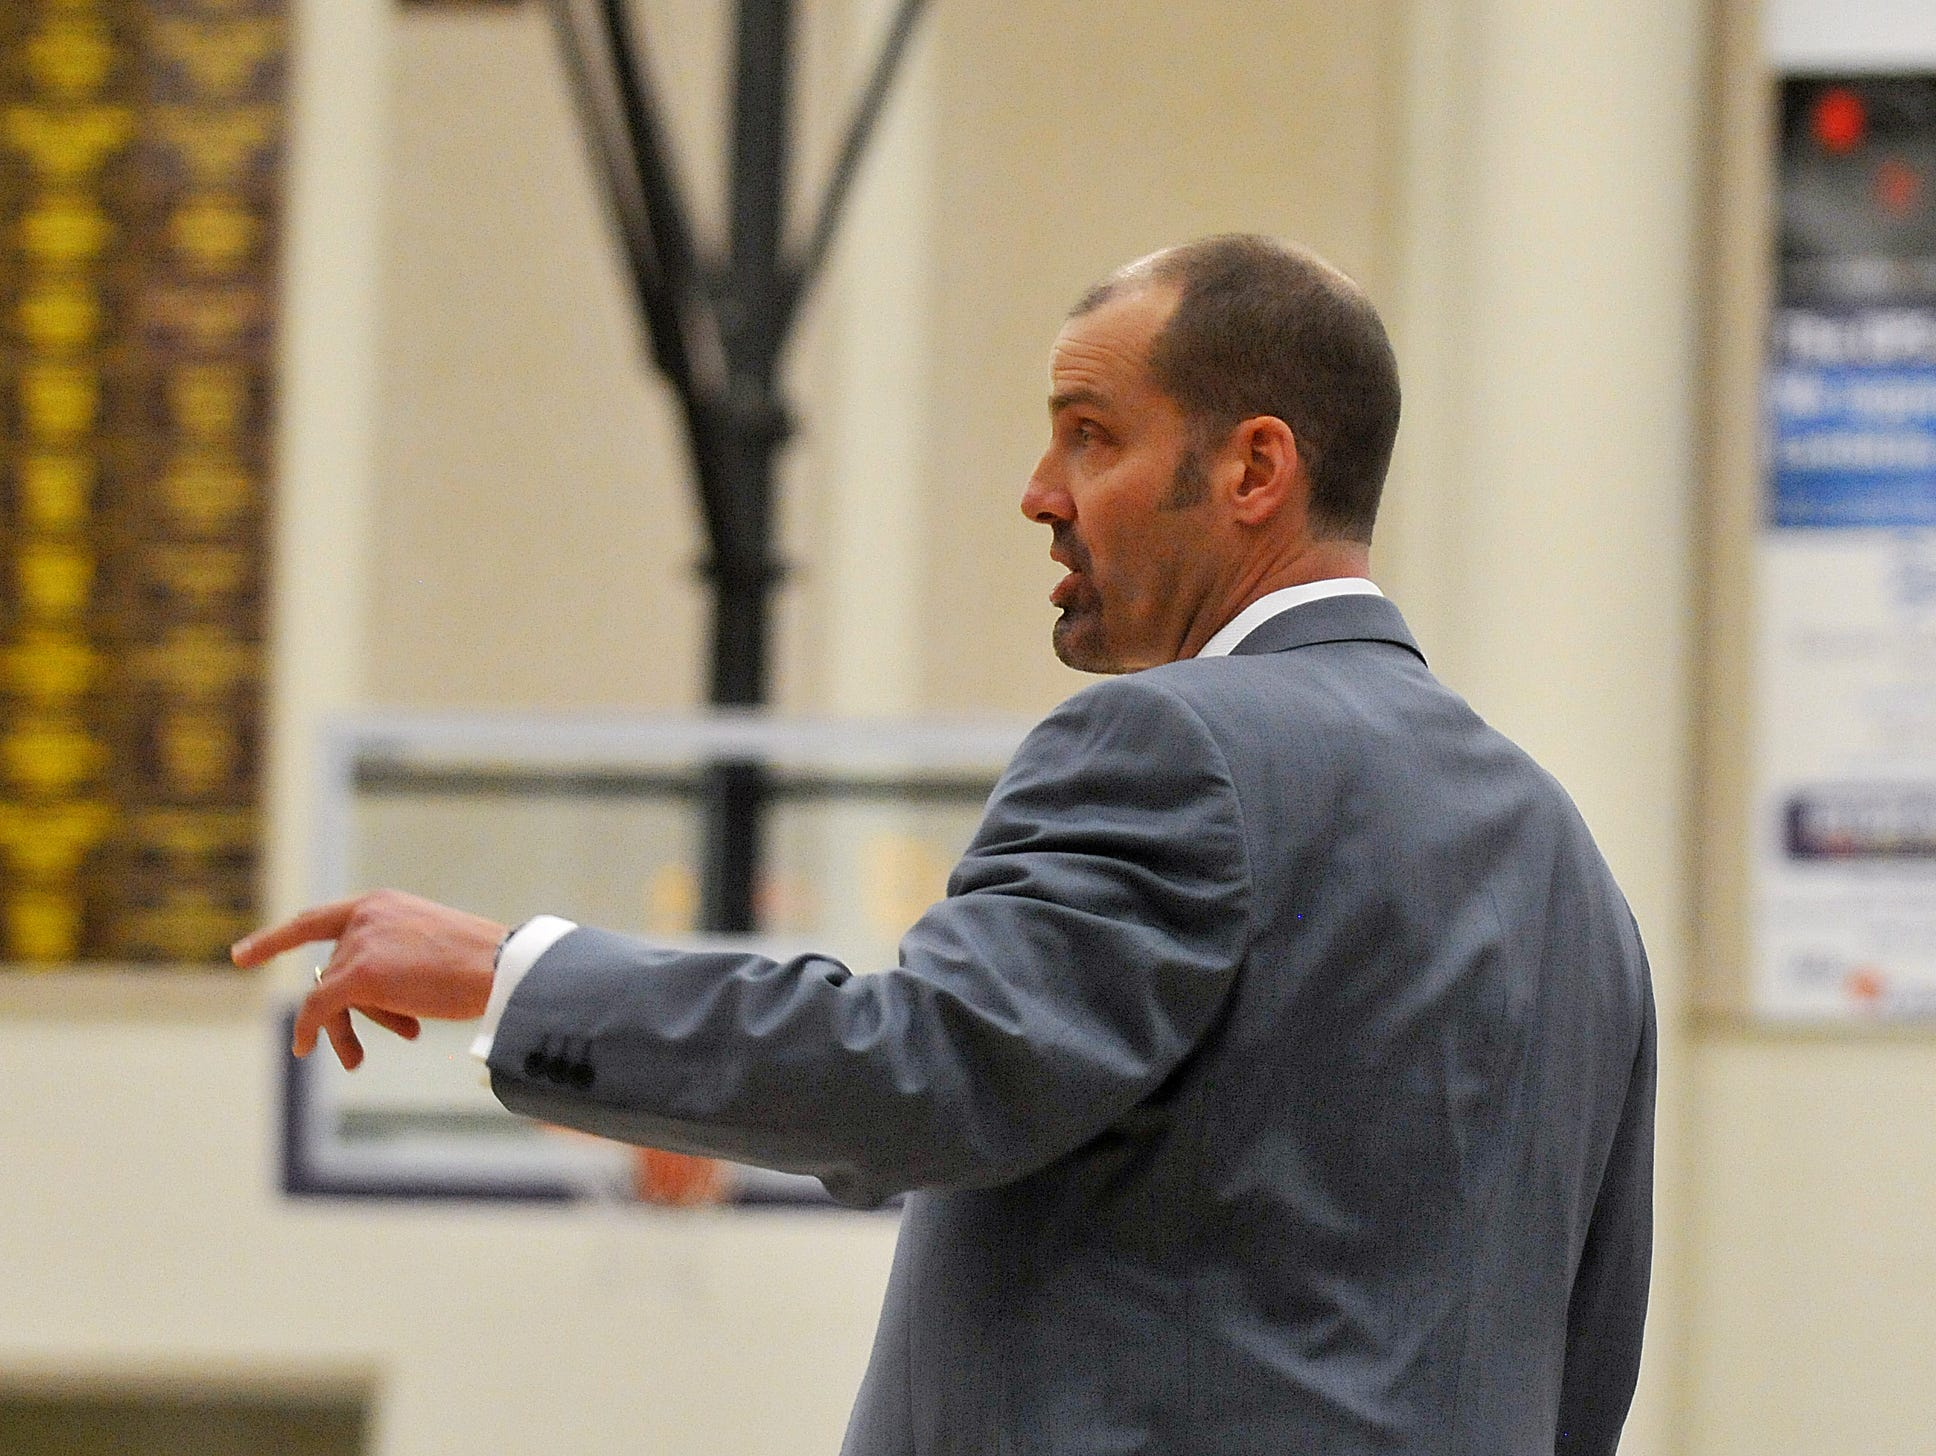 Poudre head coach Steve Hawes motions to a player during their game against Fort Collins, Jan. 11, 2012 at Fort Collins.